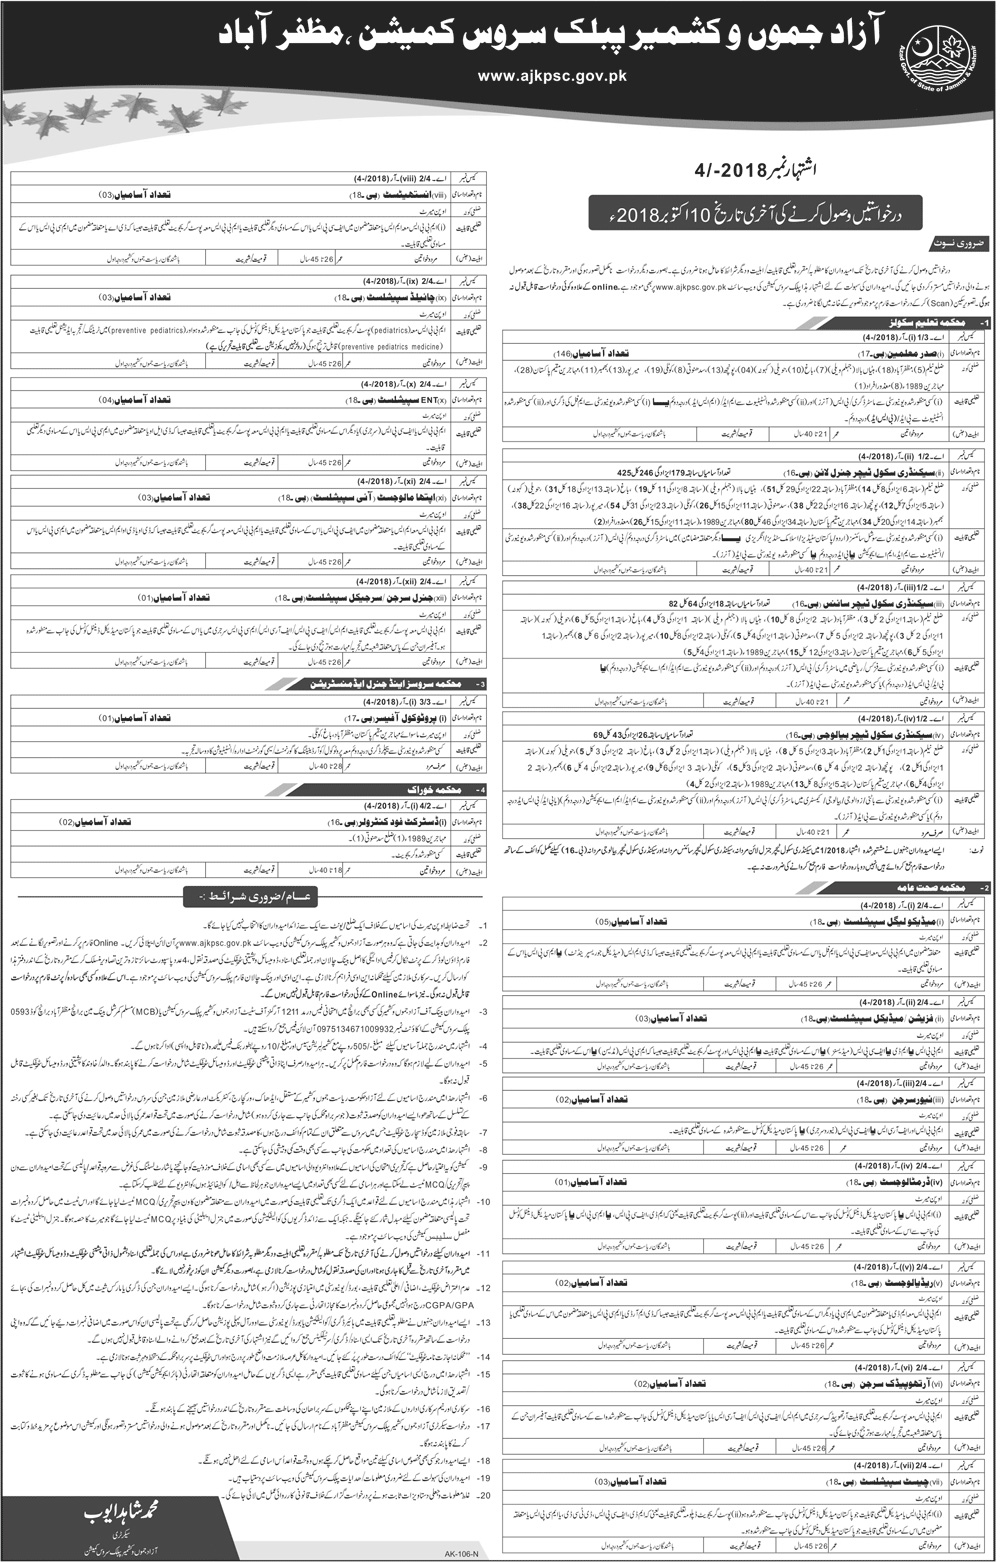 AJK PSC Jobs Advertisement 2018 Online Apply Application